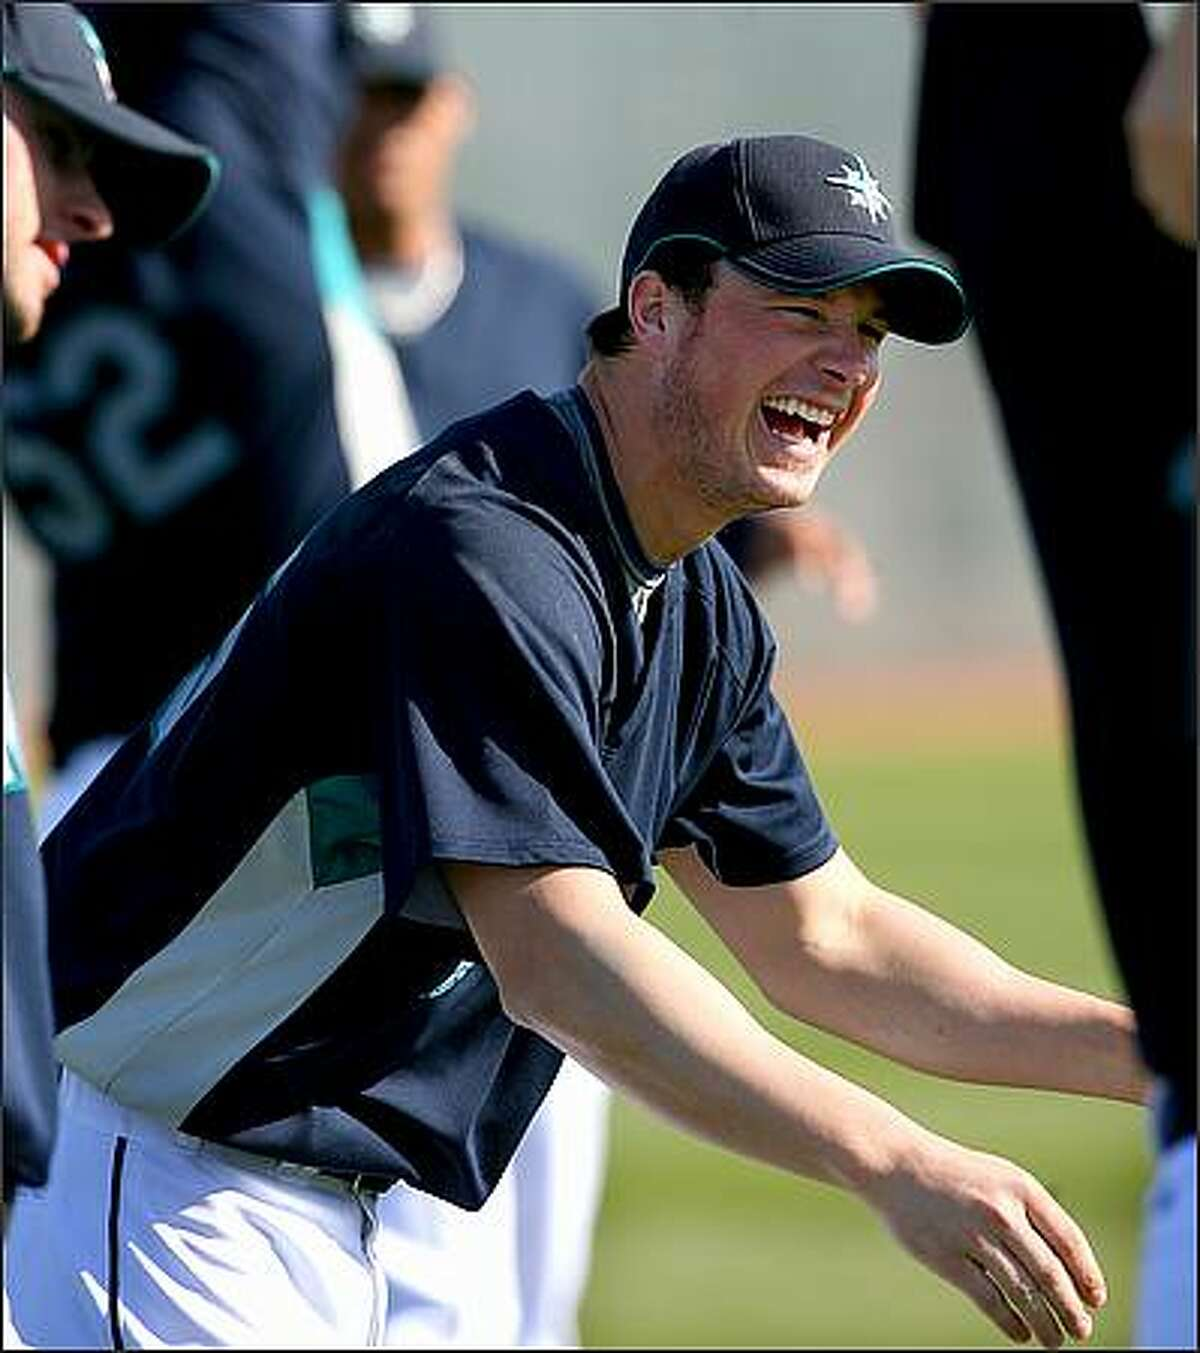 Pitcher Eric Bedard finds a moment of levity as he stretches.